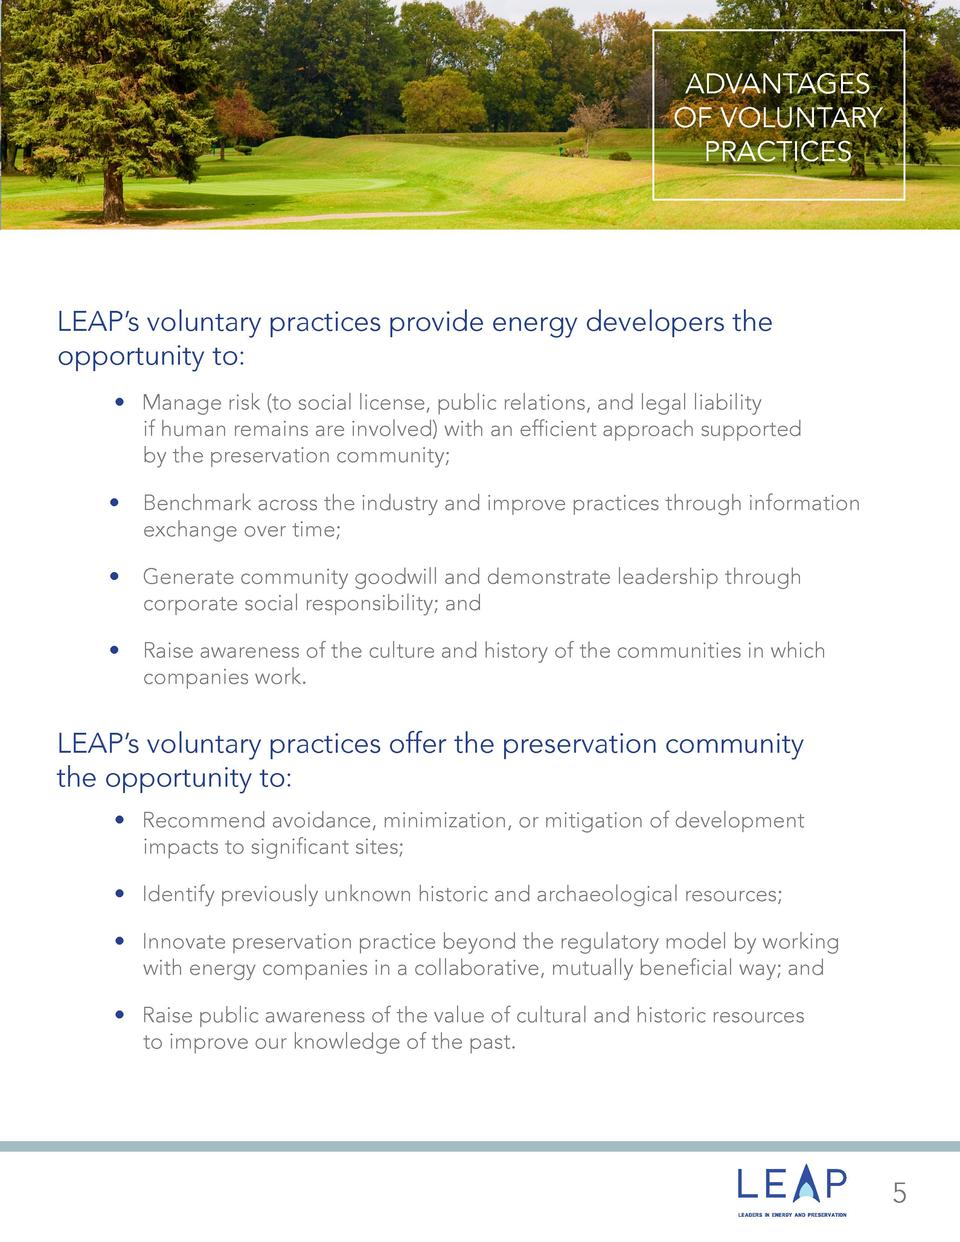 ADVANTAGES OF VOLUNTARY PRACTICES  LEAP   s voluntary practices provide energy developers the opportunity to         Manag...